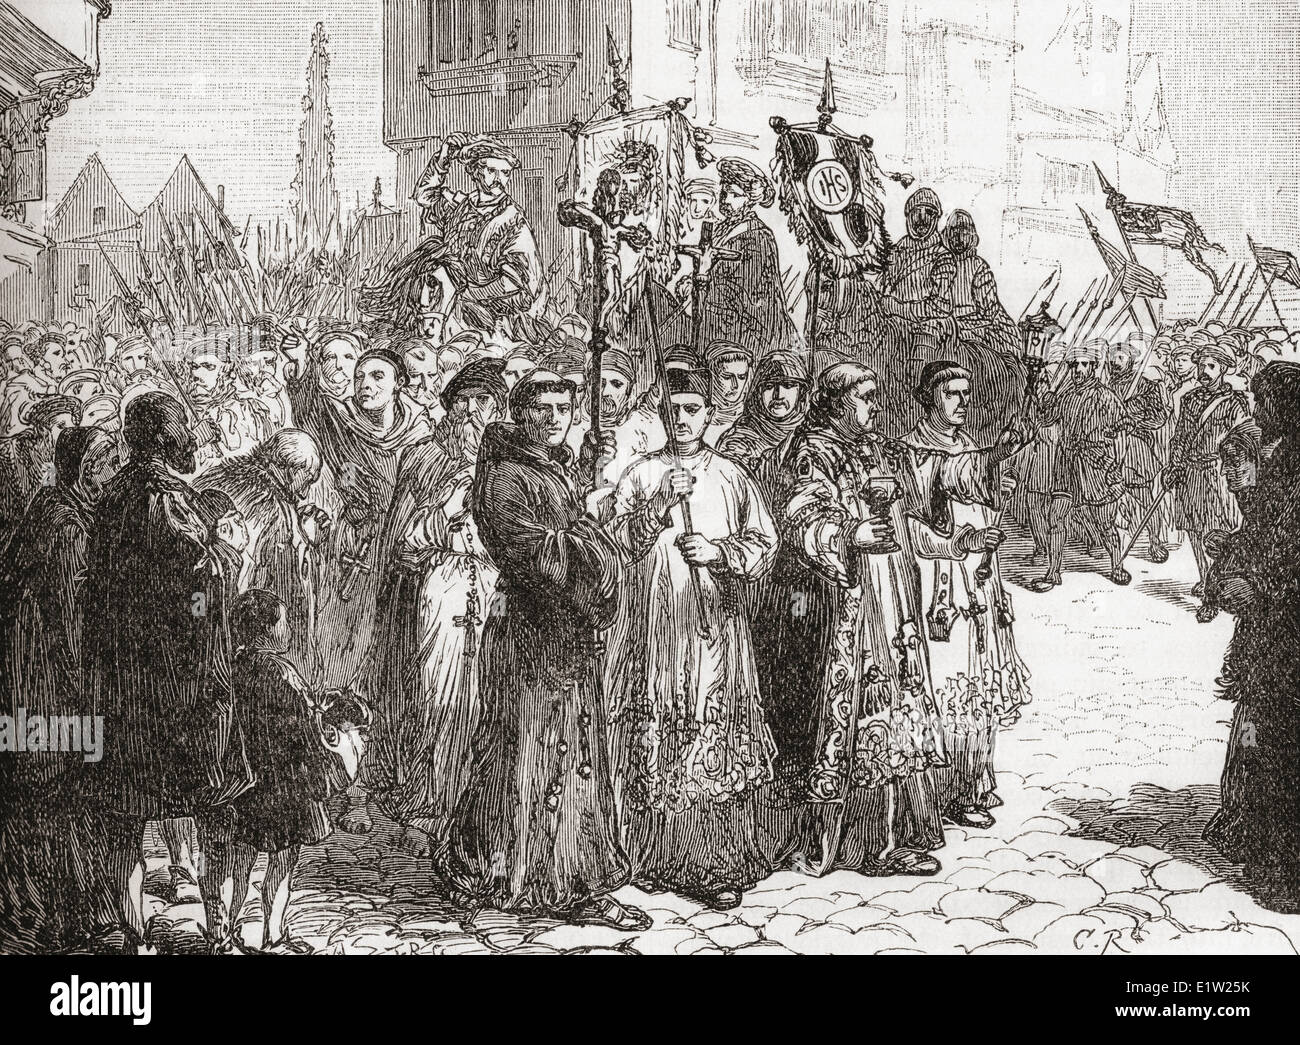 The Pilgrimage of Grace, a popular rising in Yorkshire in 1536 in protest against Henry VIII's break with Roman - Stock Image